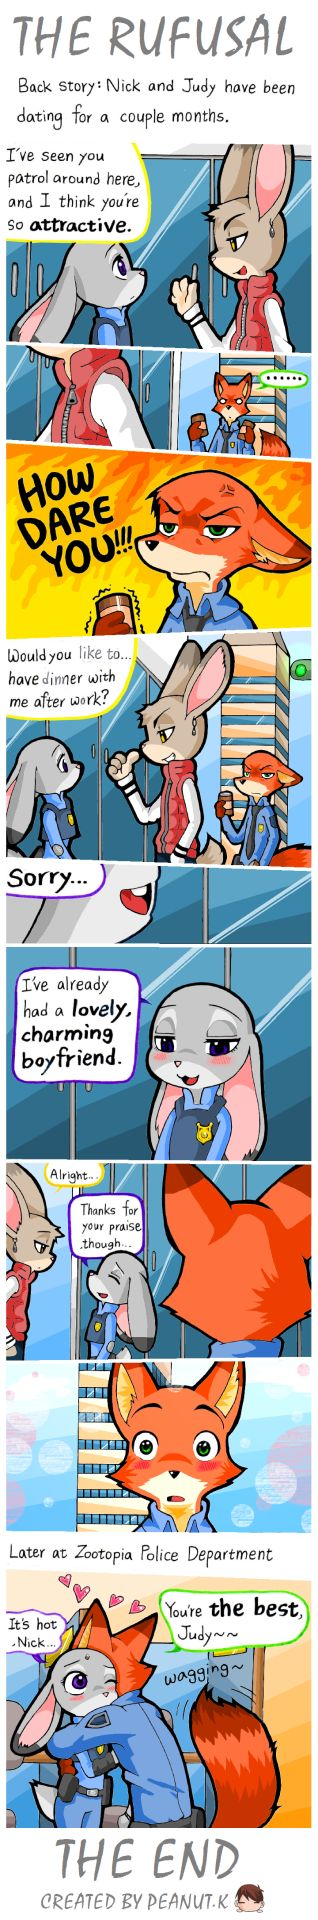 """peanut-k: """" NICK & JUDY SHORT COMIC~ THE REFUSAL Peanut.K: Chief Bogo, what's your opinion of flirting during work? Chief Bogo: Stop talking about that…Officer Hopps and Officer Wilde do that every day, and I just….(sign) """""""